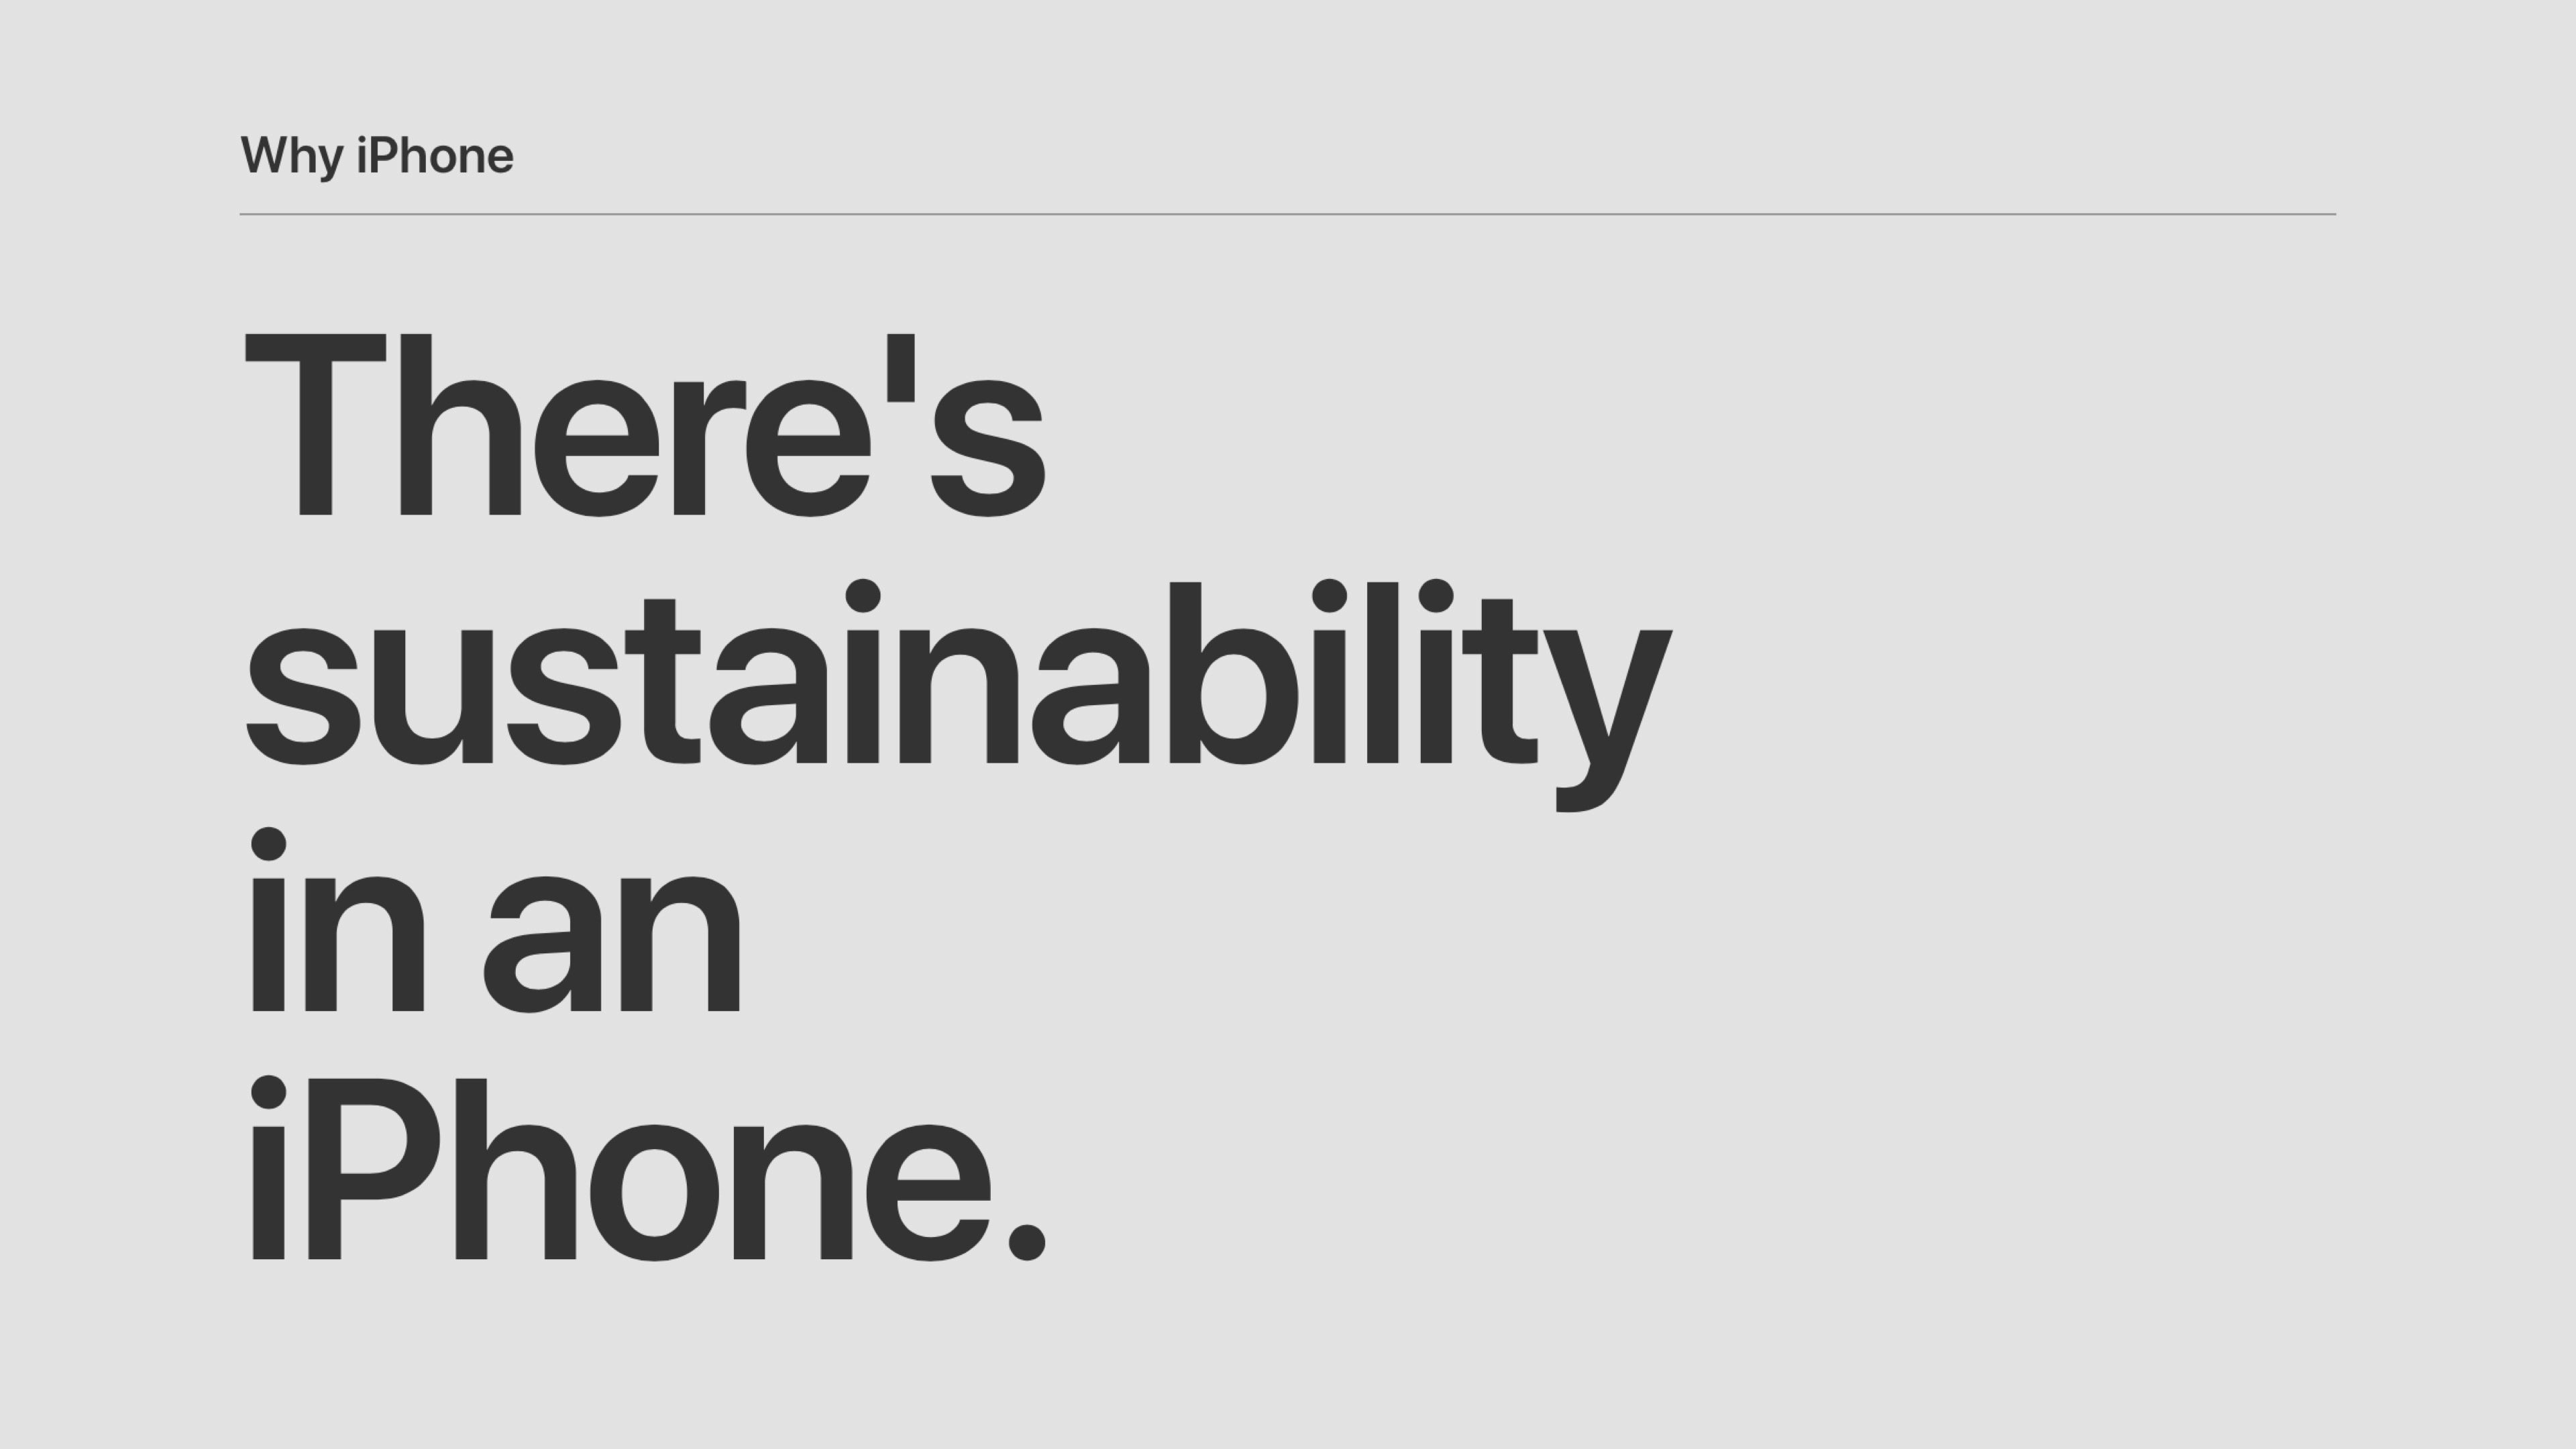 Apple promotes iPhone privacy and sustainability in new